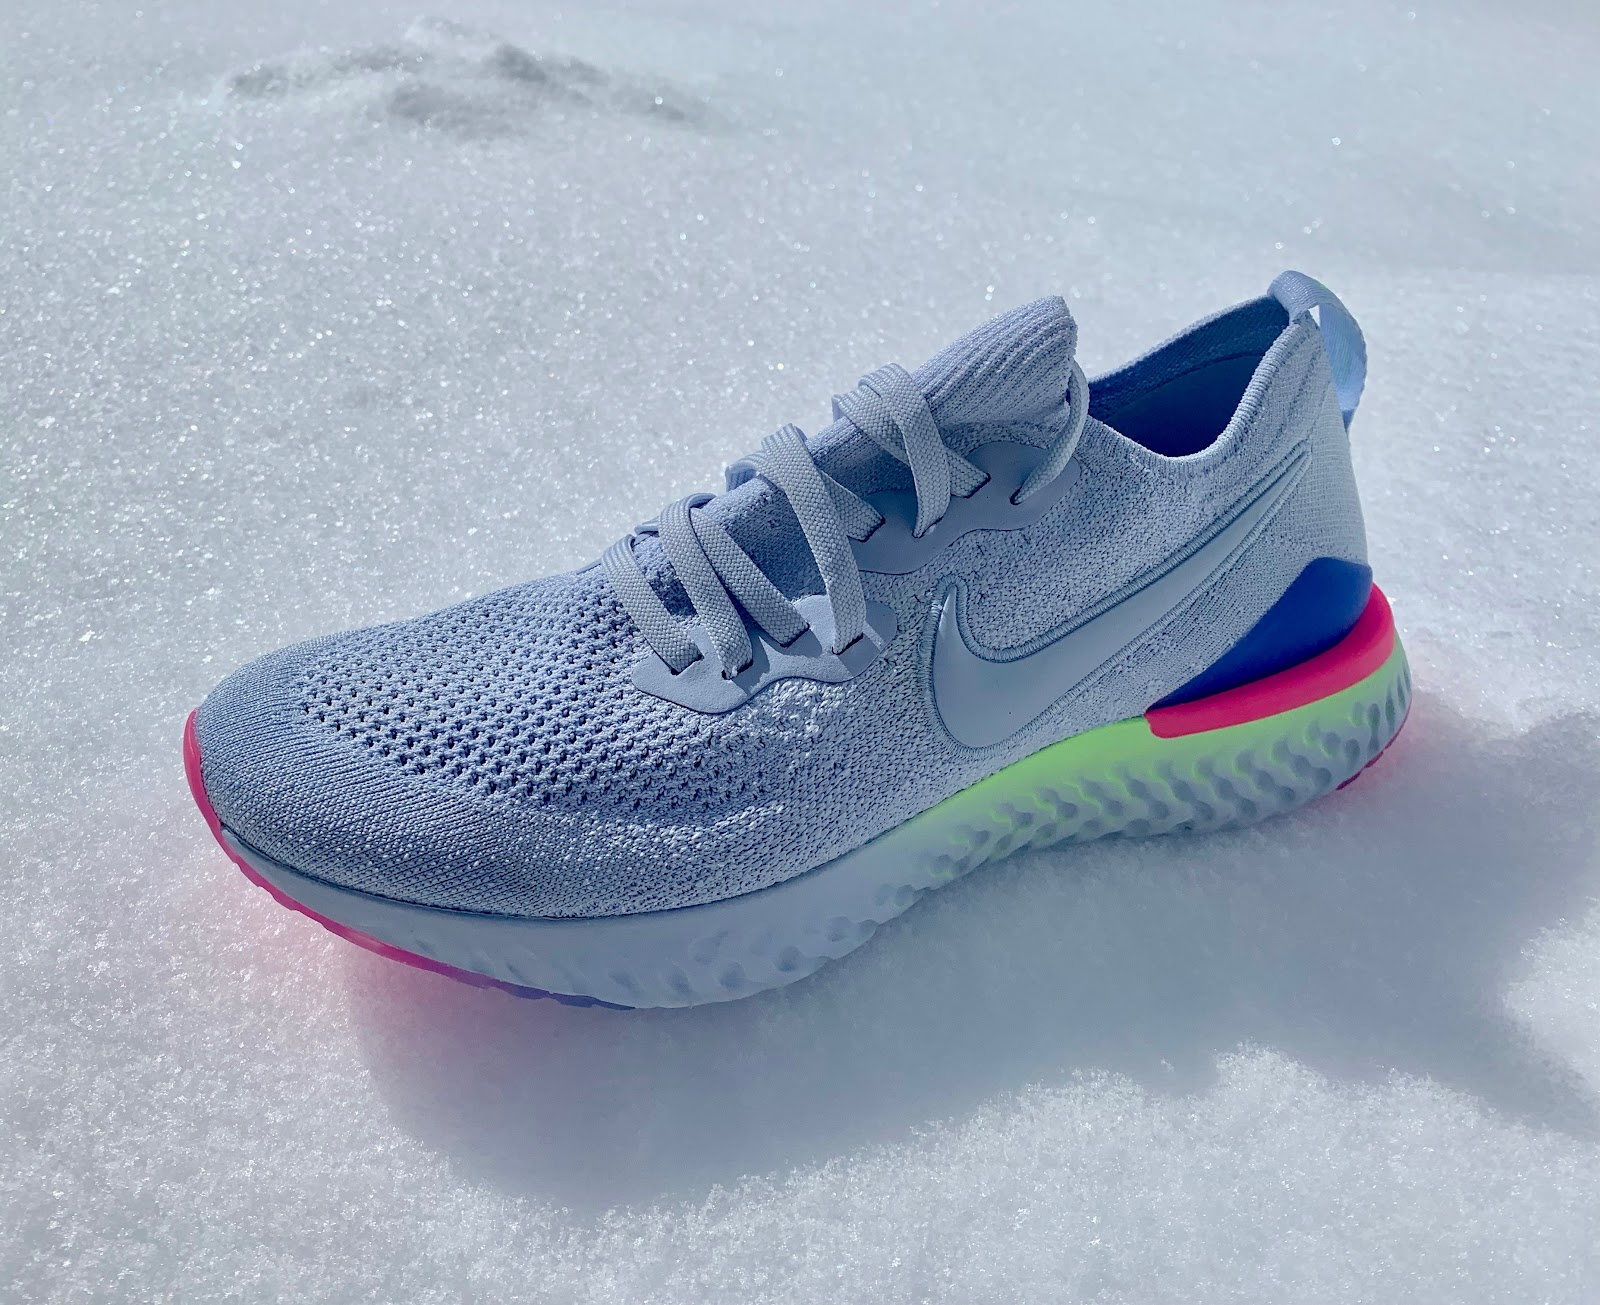 243e988326796 Road Trail Run  Nike Epic React Flyknit 2 Review  A Subtle yet ...